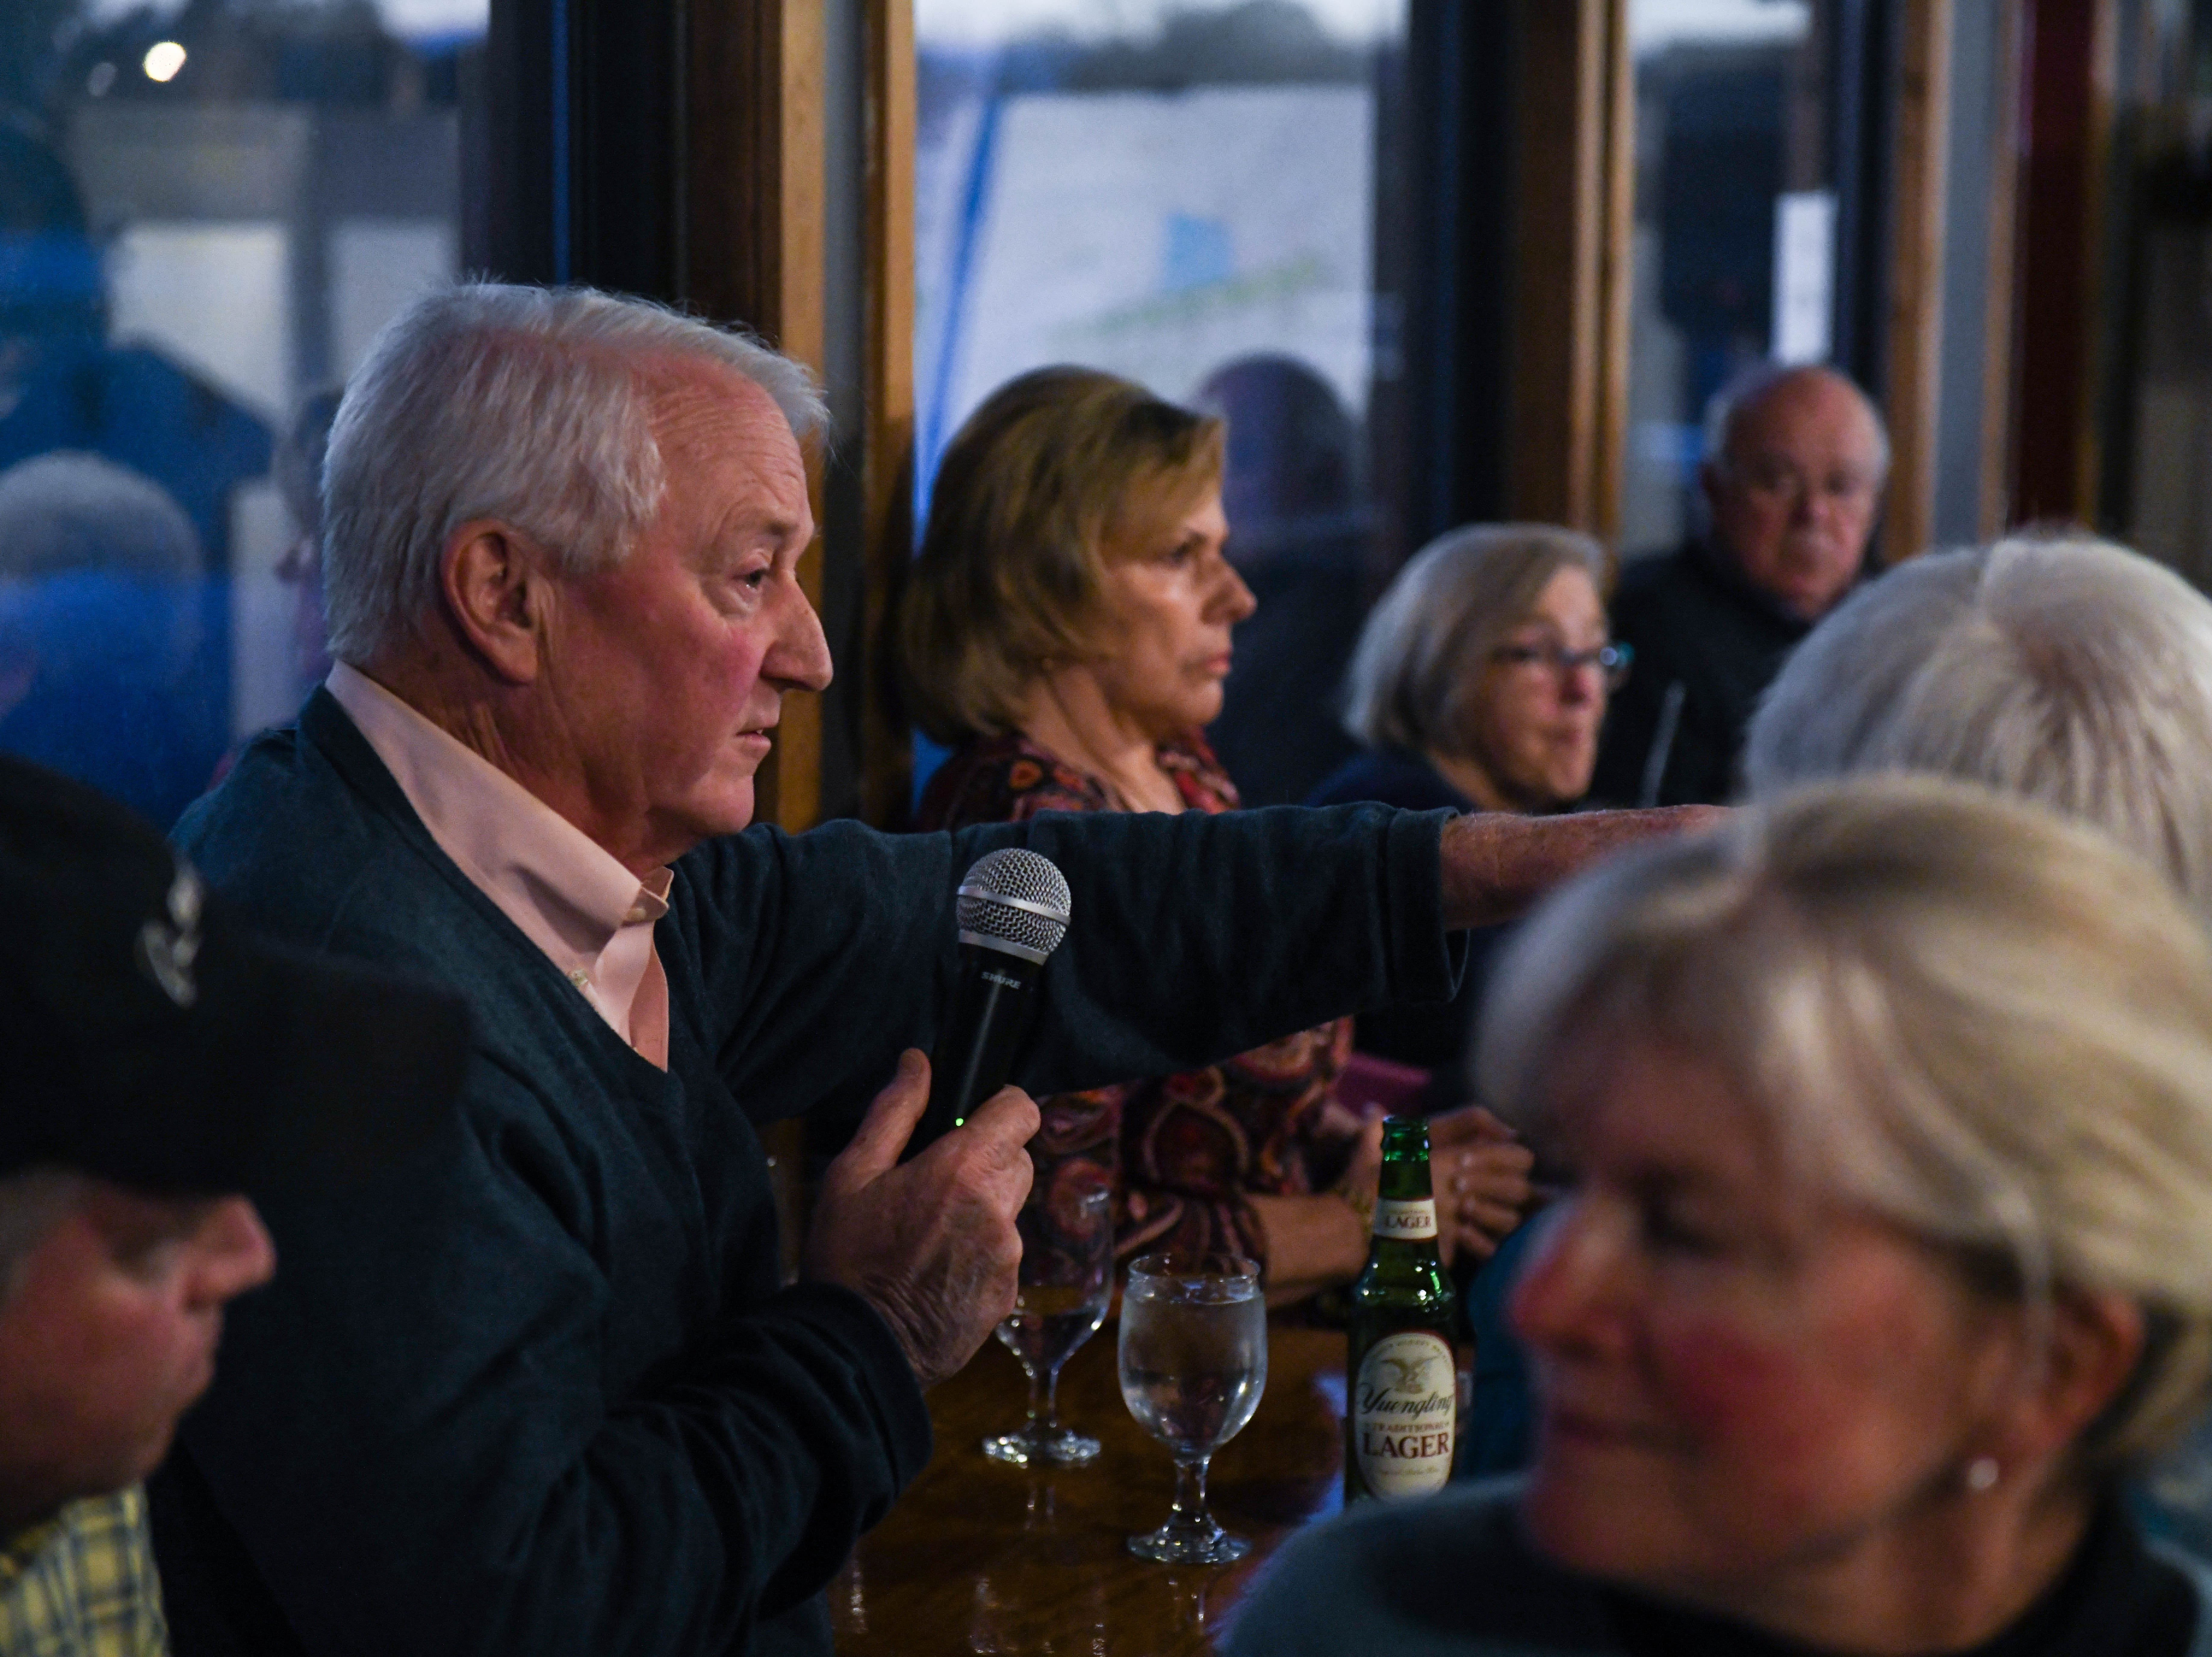 Local resident, Bill Nickel, discusses flooding and sea level rise at a community meeting in Wachapreague, Virginia led by the Nature Conservancy on Monday, March 4, 2019.